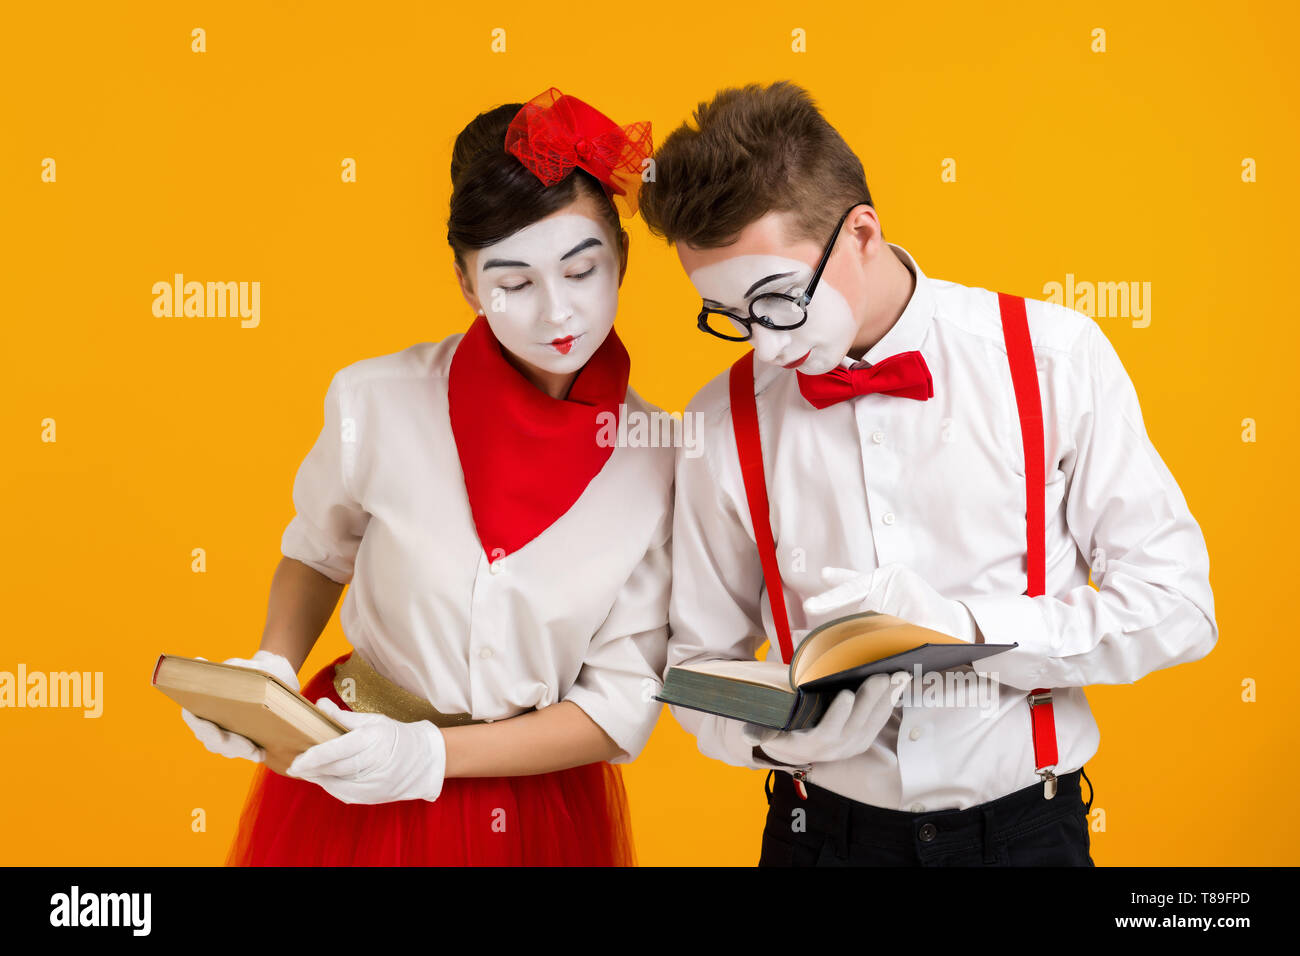 portrait of mime couple artist reading book isolated on yellow background - Stock Image